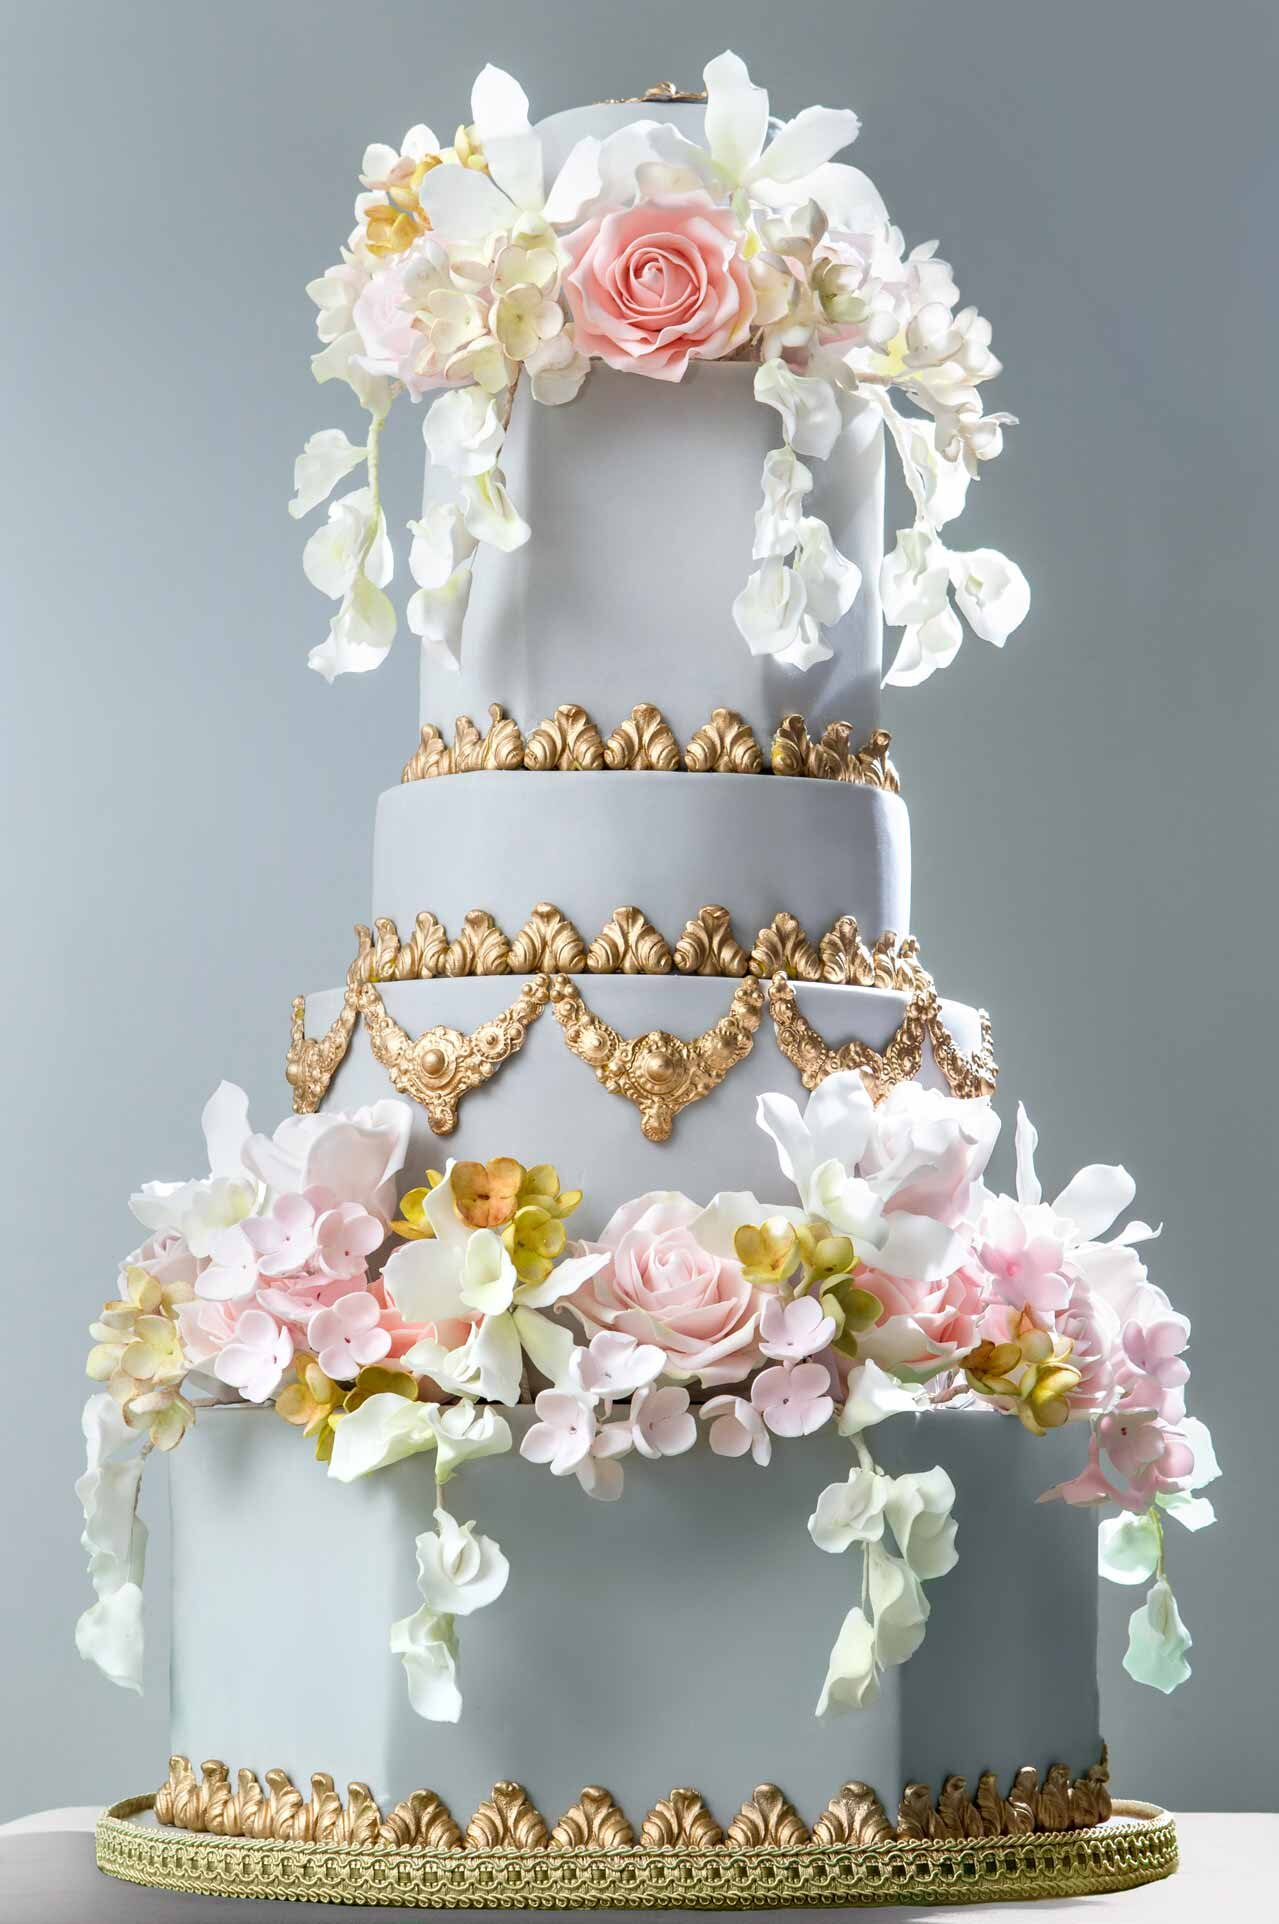 GREY-AND-GOLD-BAROQUE-CAKE.jpg